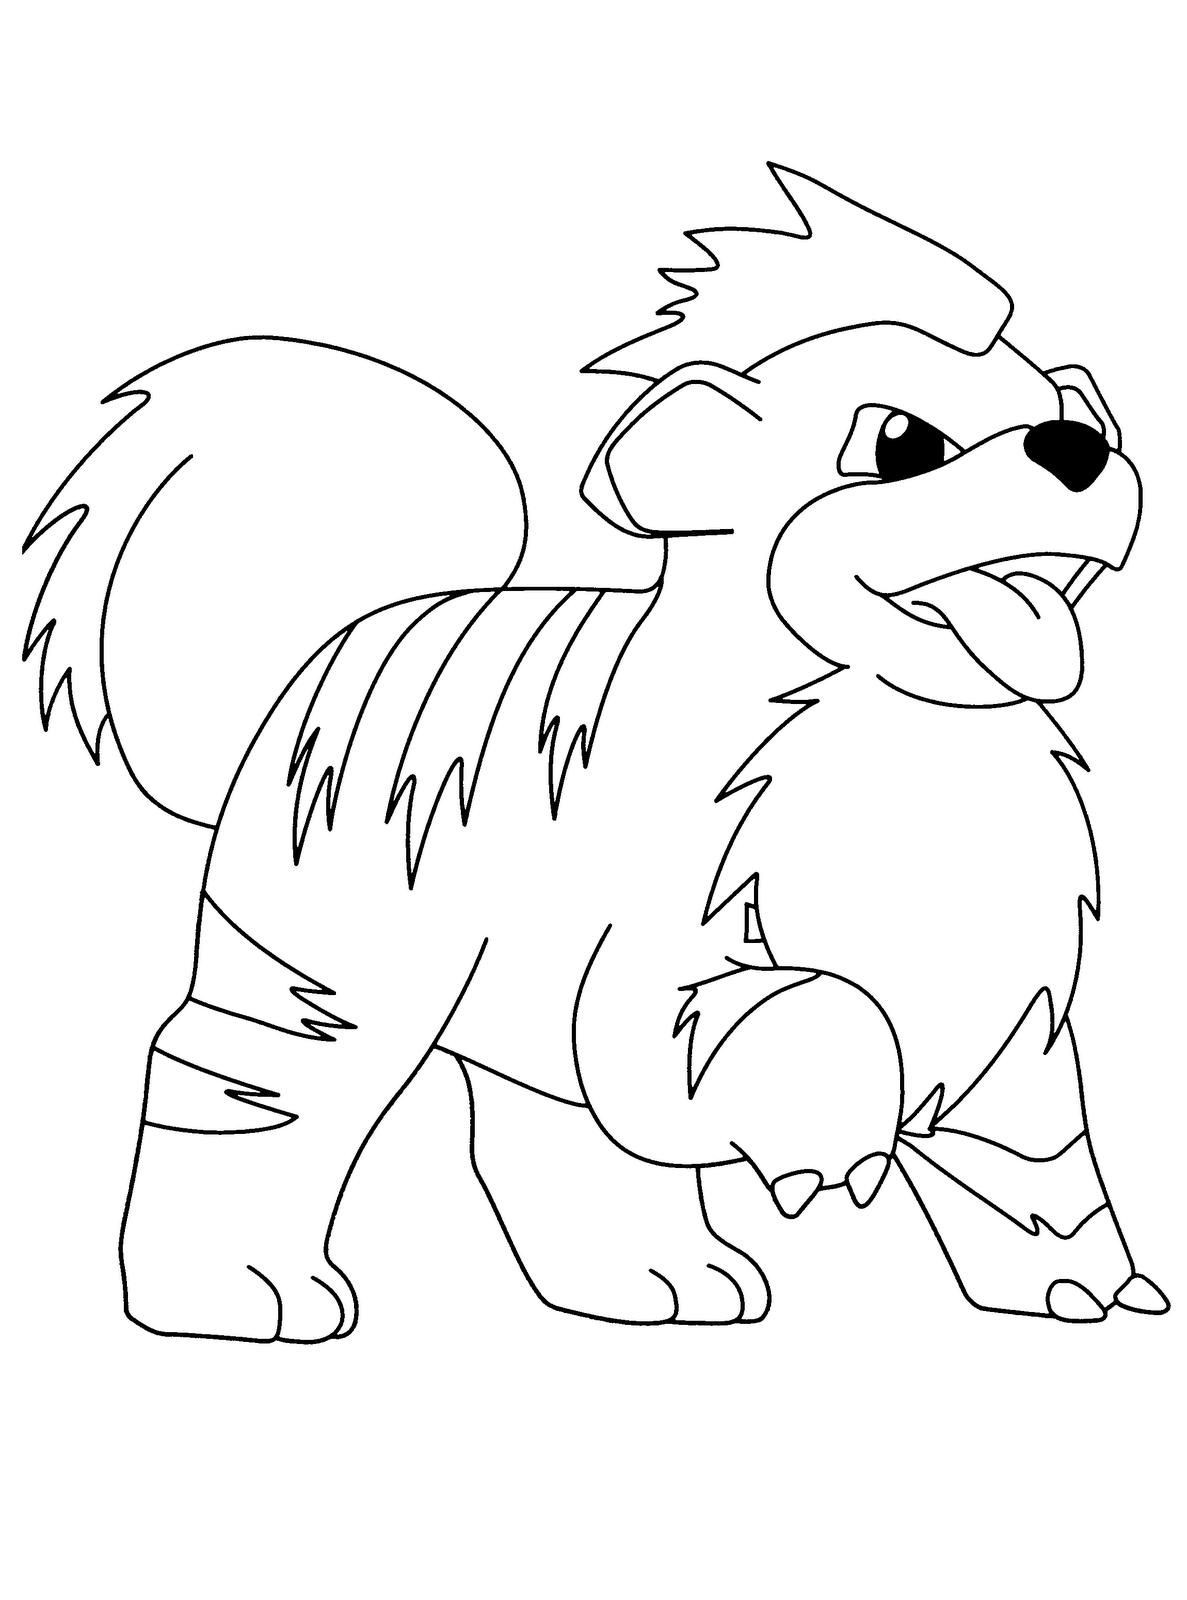 Coloring pages nintendo - Explore Print Coloring Pages And More